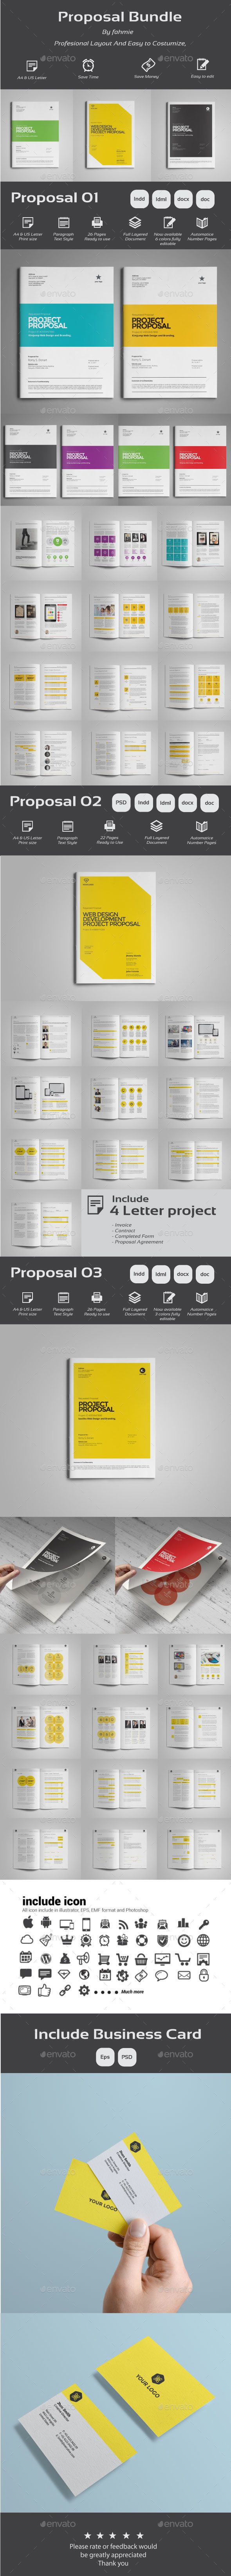 proposal template for word%0A Proposal Bundle